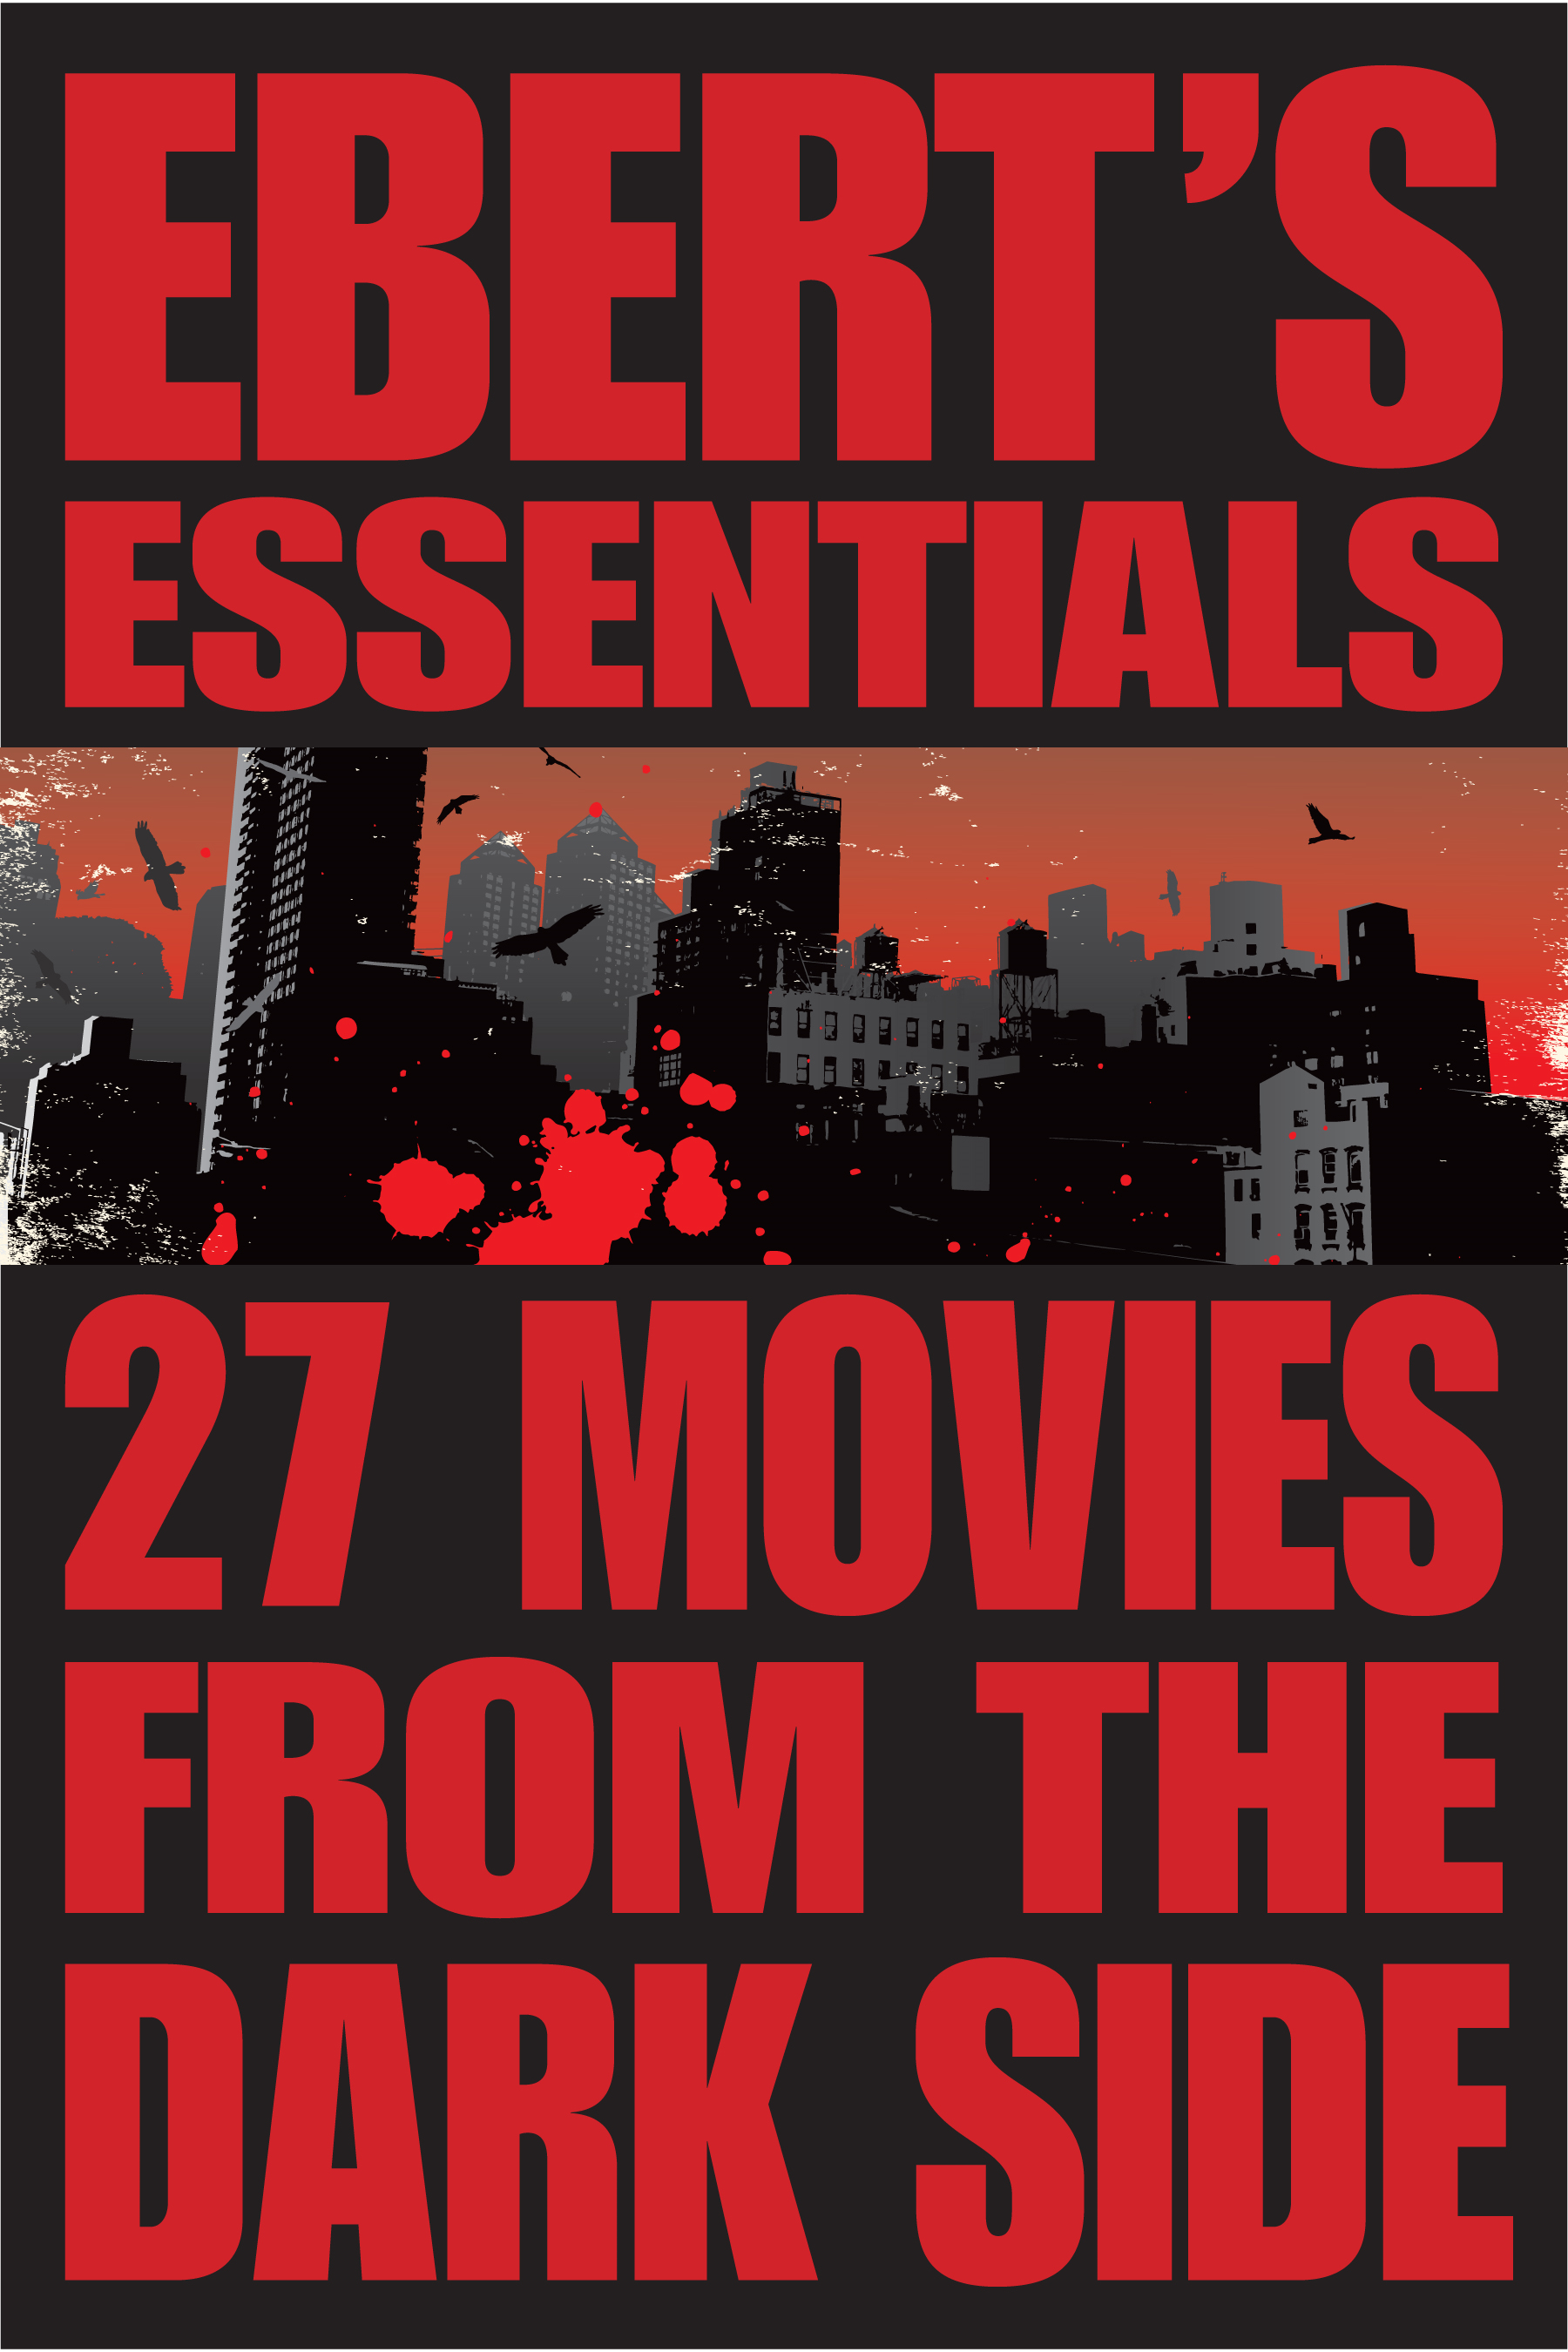 27 Movies from the Dark Side: Ebert's Essentials